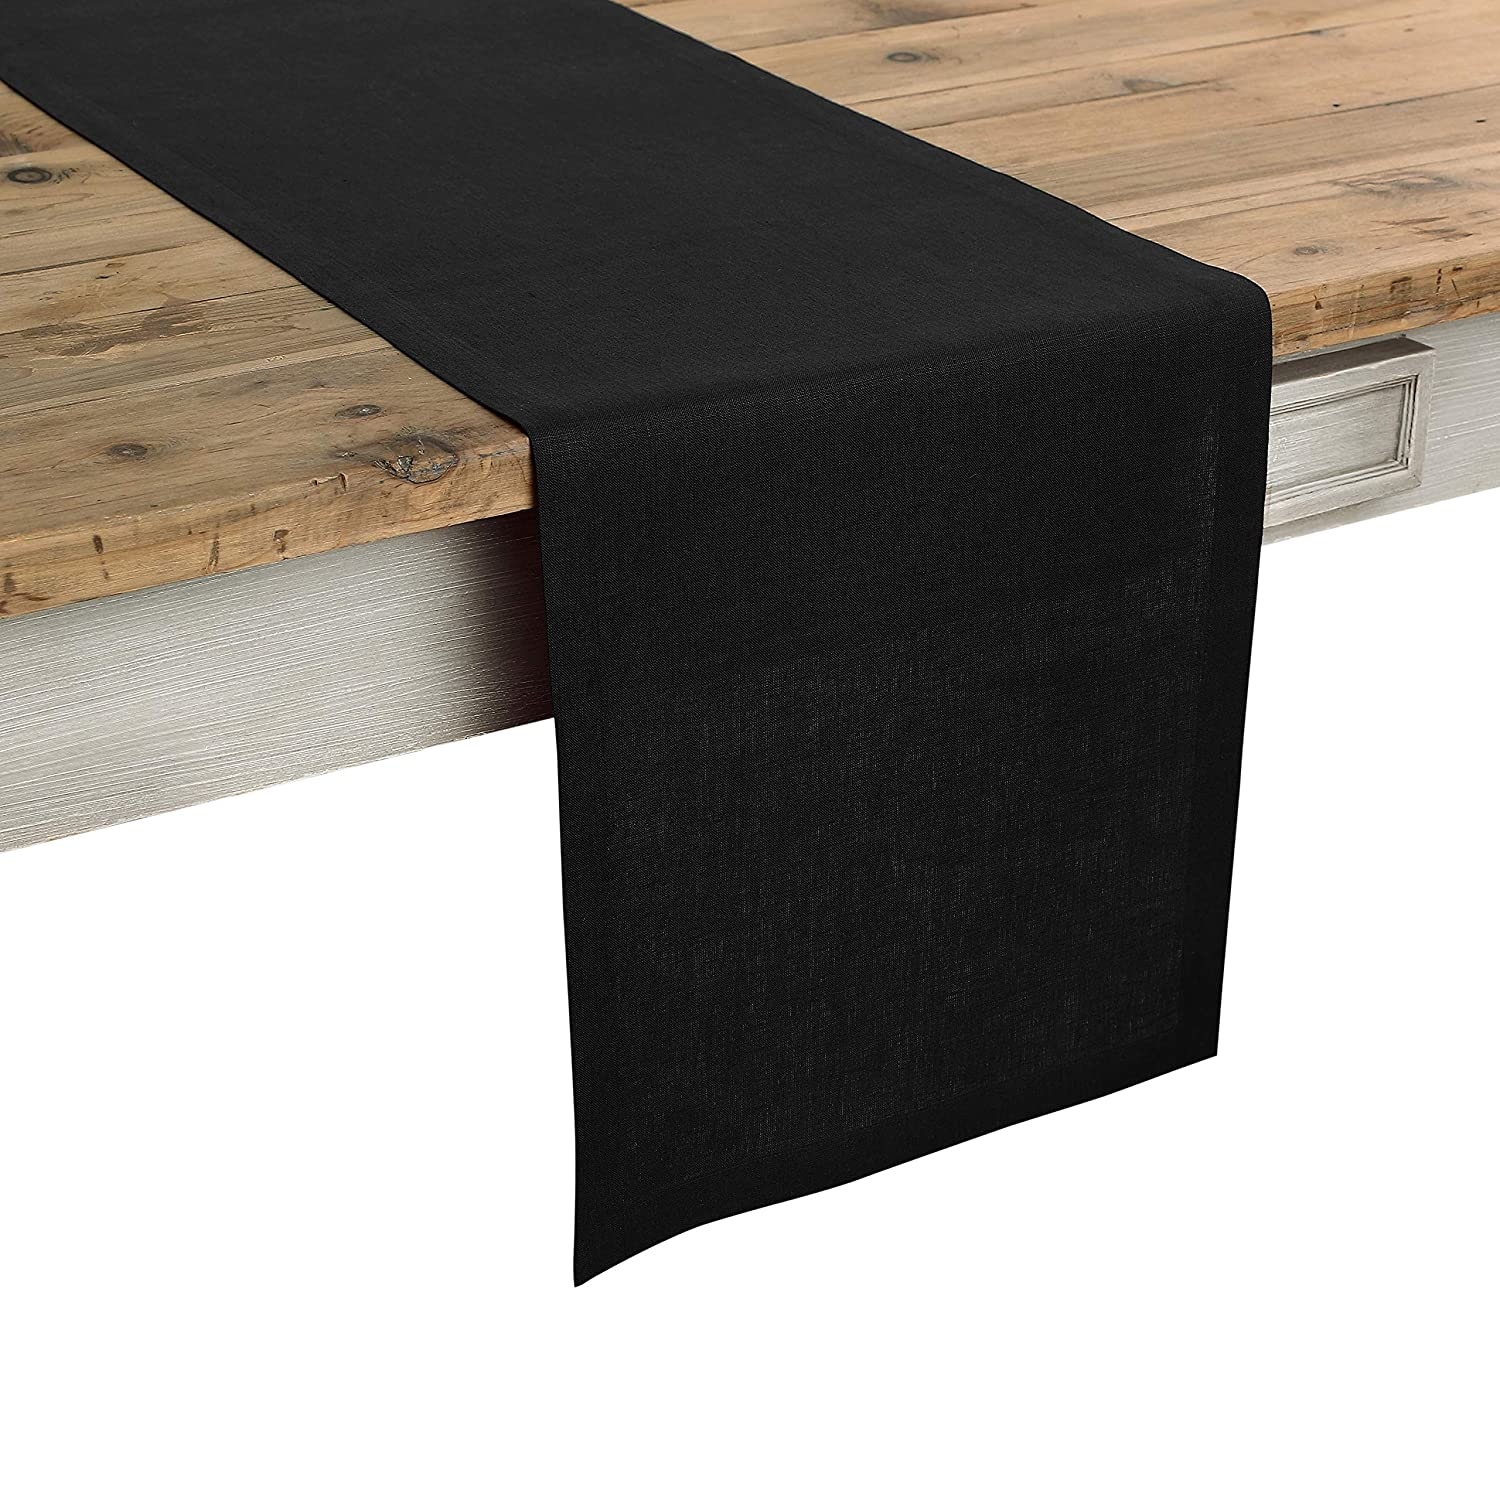 Solino Home 100% Pure Linen Table Runner – 14 x 60 Inch Athena, Handcrafted from European Flax, Natural Fabric Runner – Black